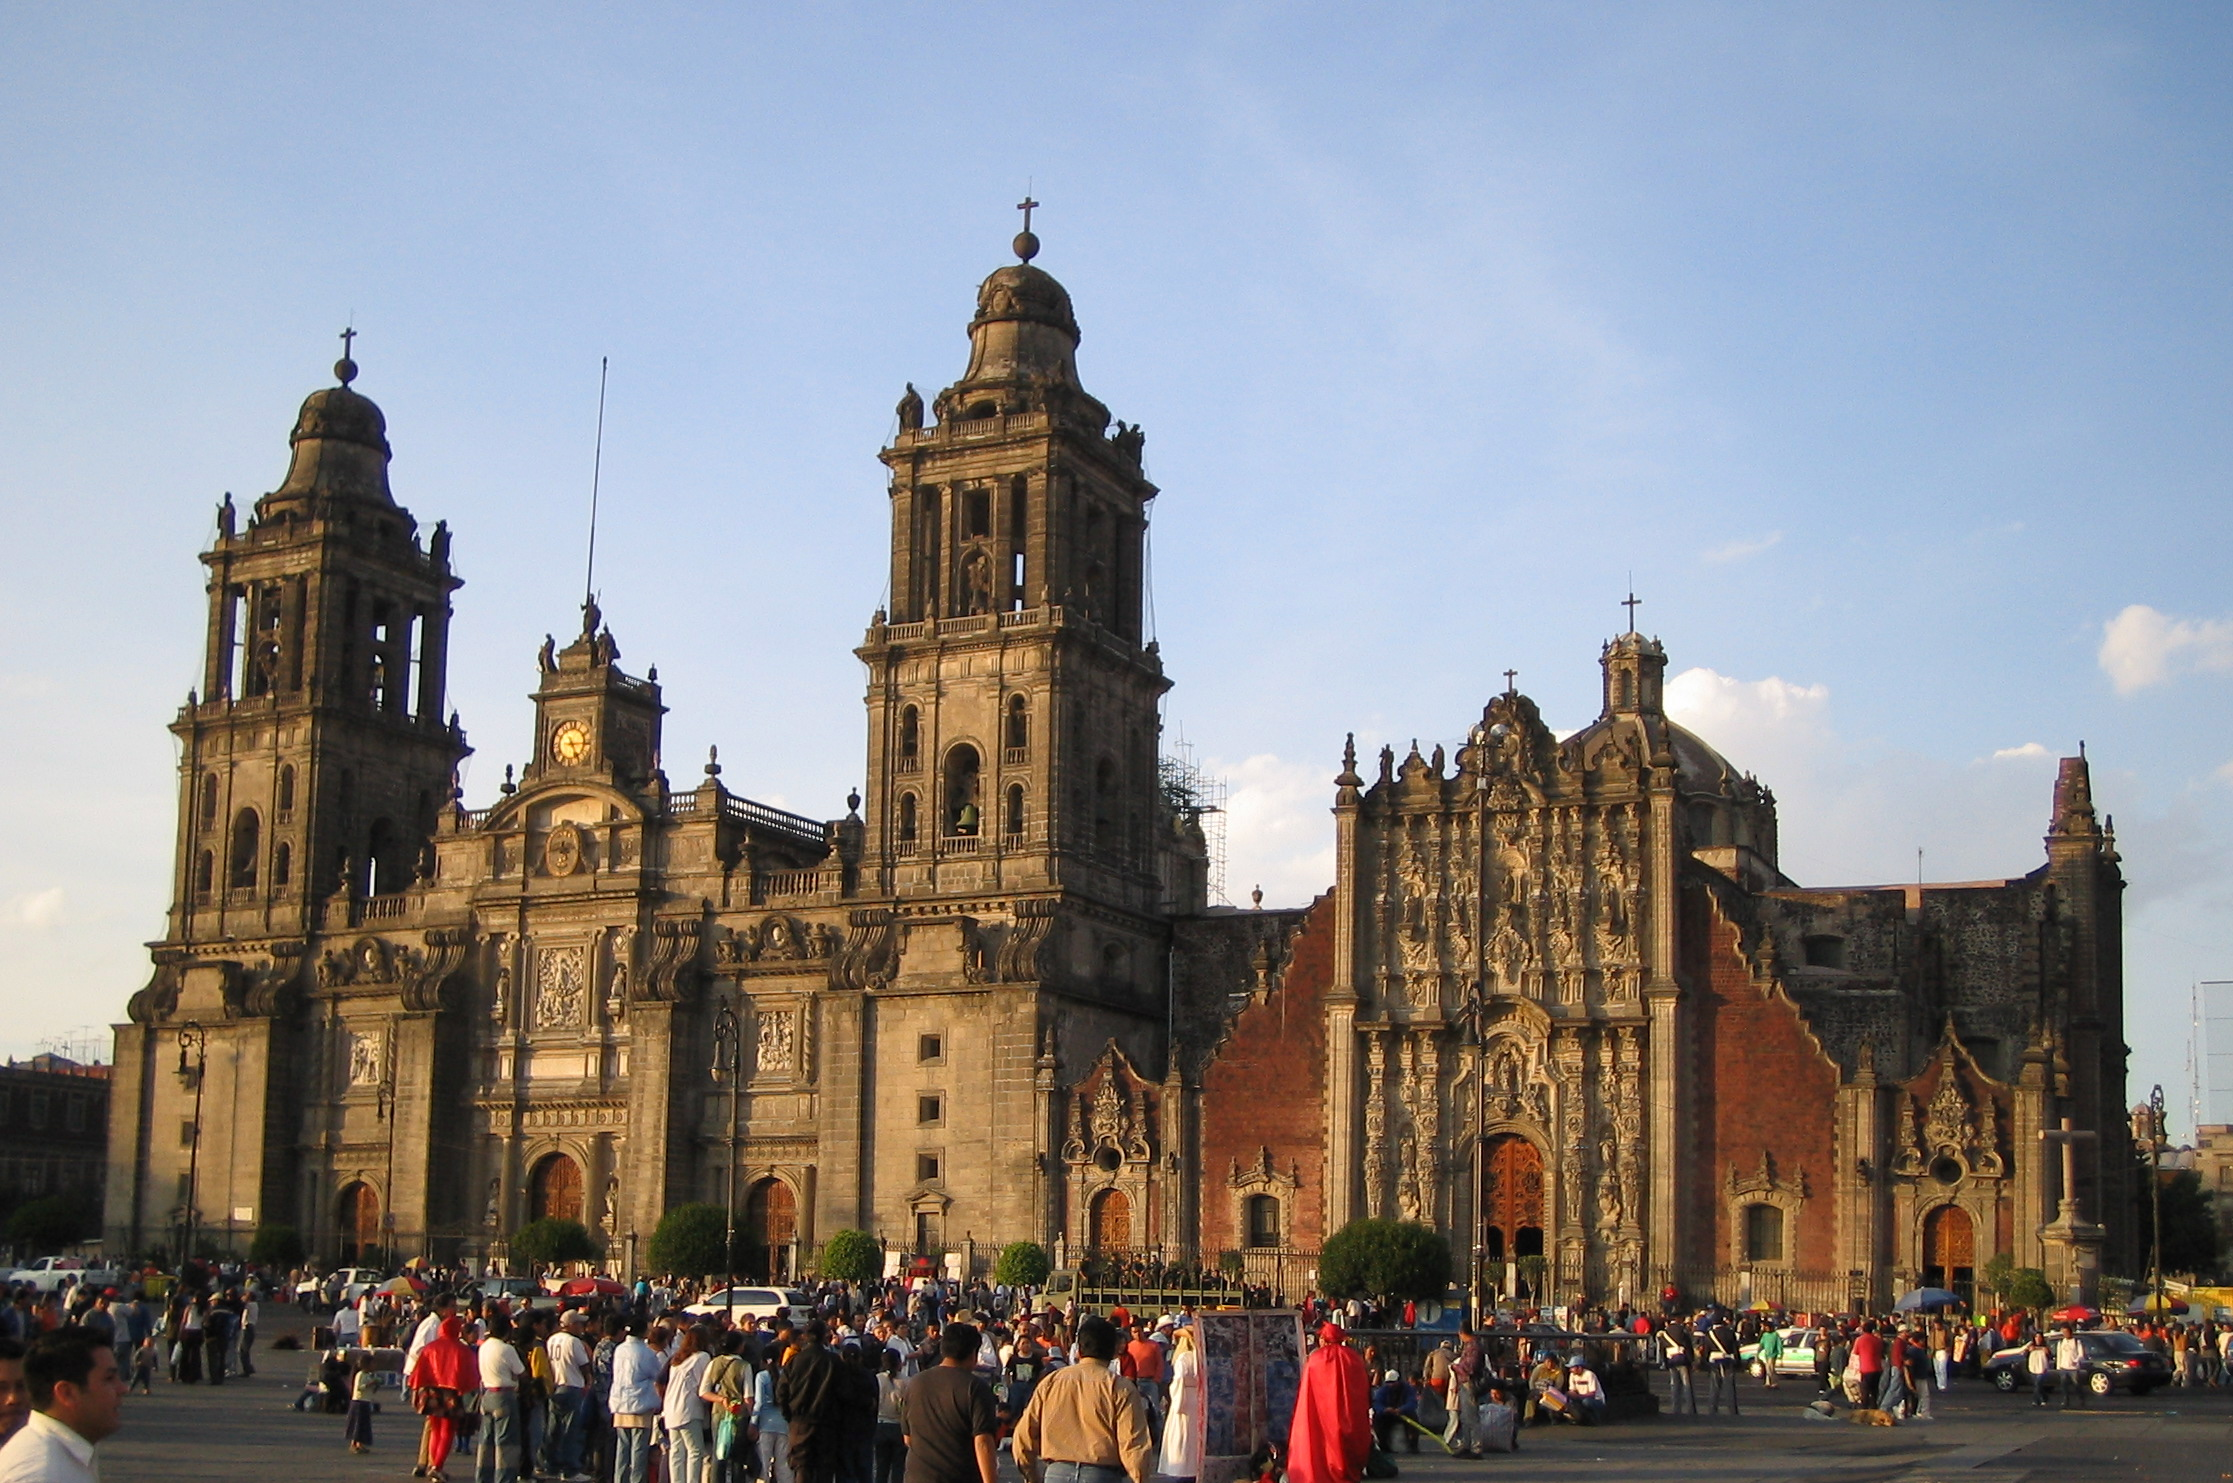 The metropolitan cathedral of Mexico City